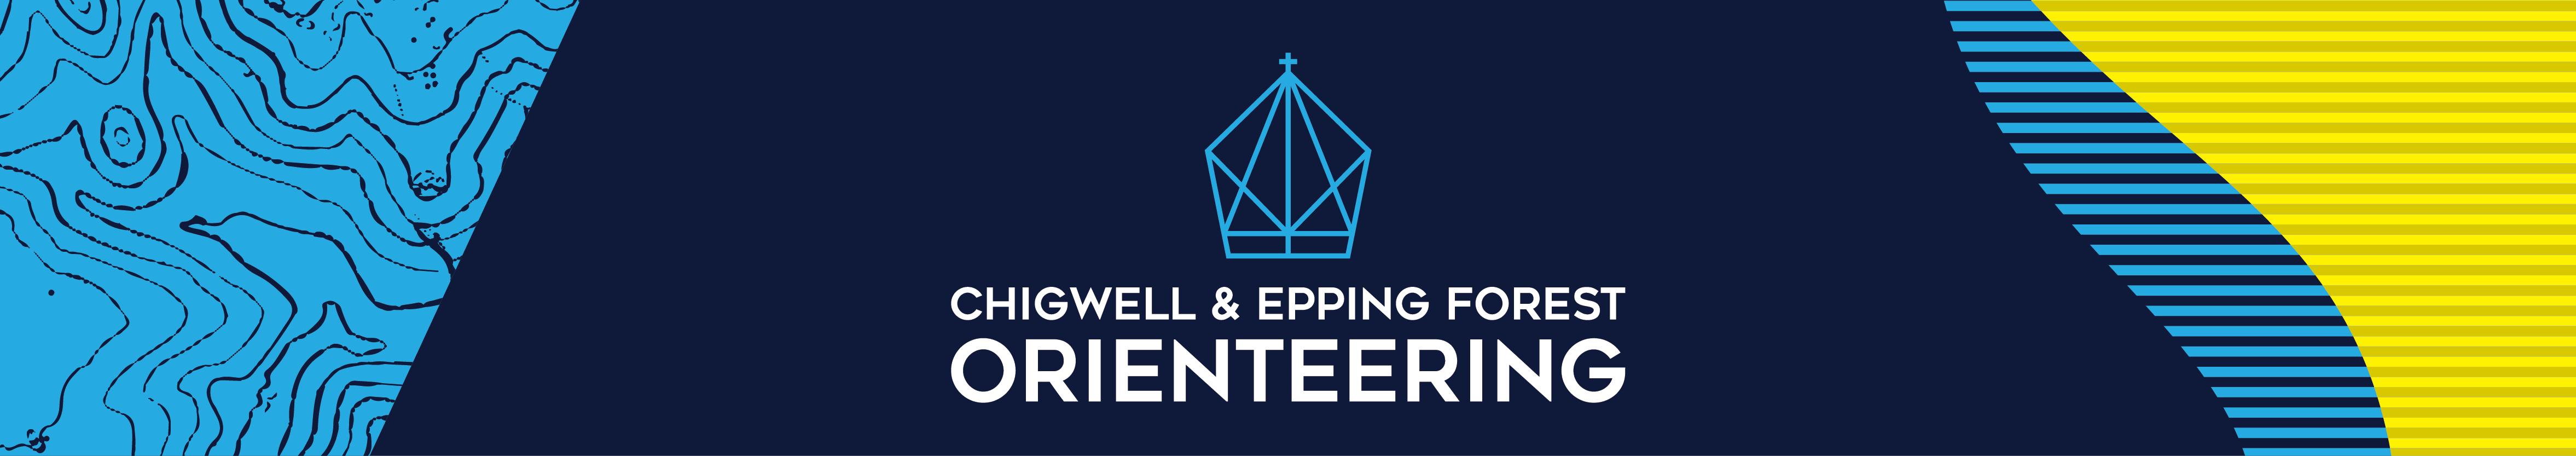 Chigwell & Epping Forest Orienteering Club